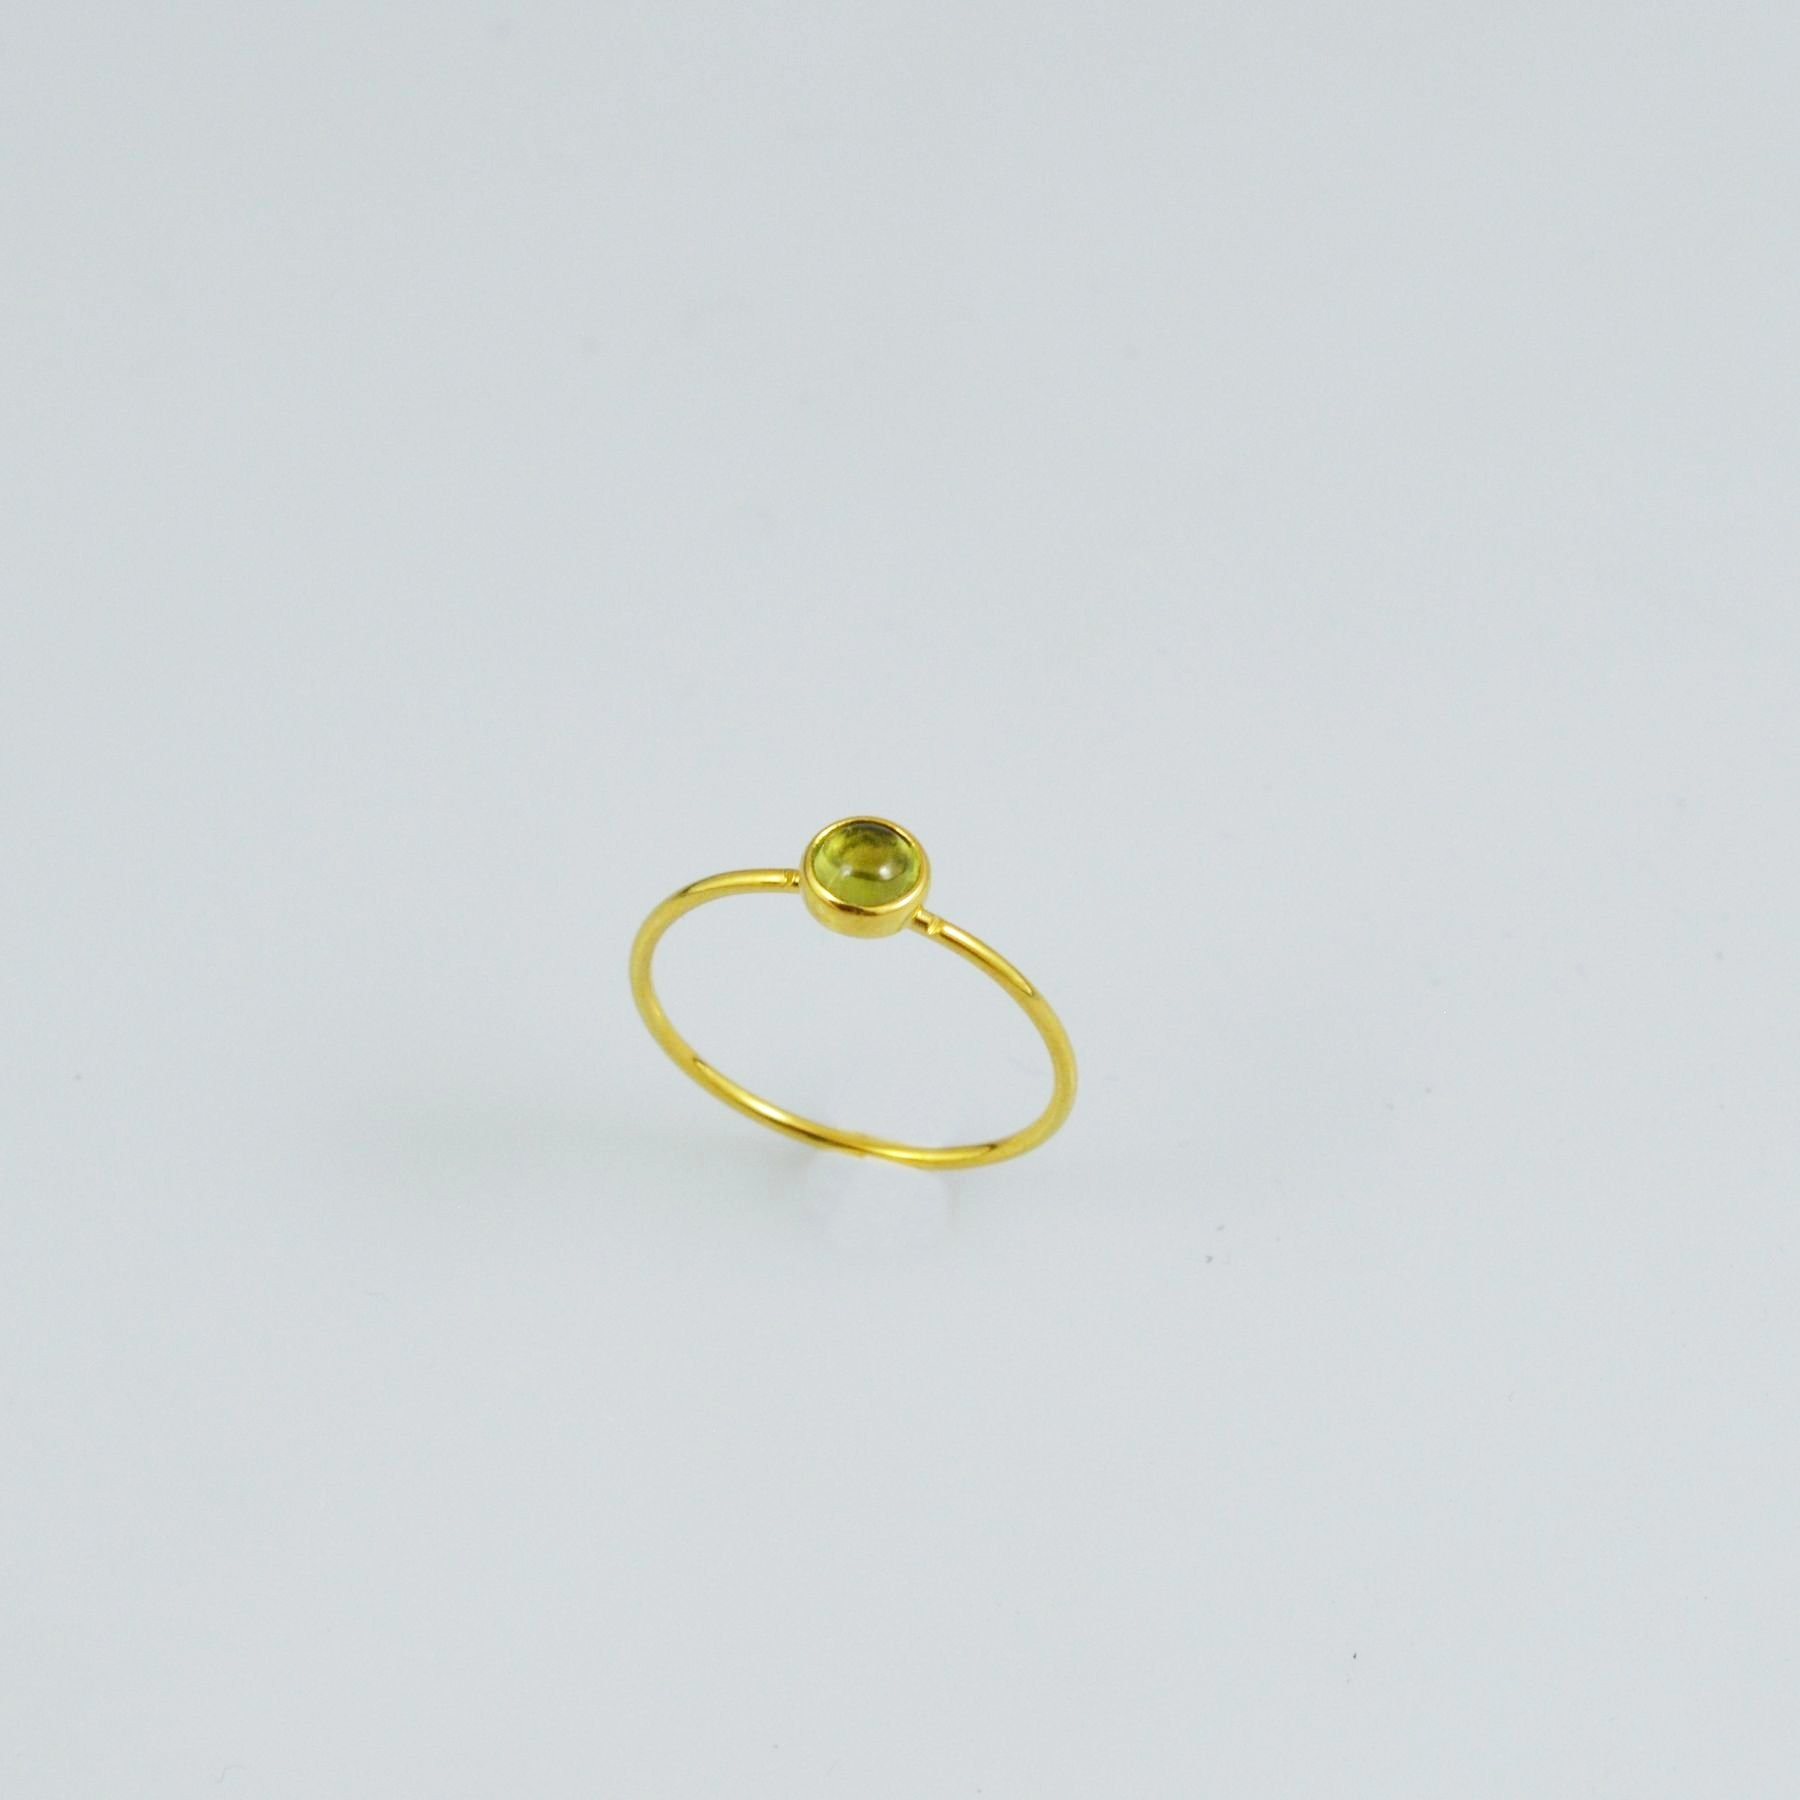 Handmade gold rings 14K with tourmaline stone